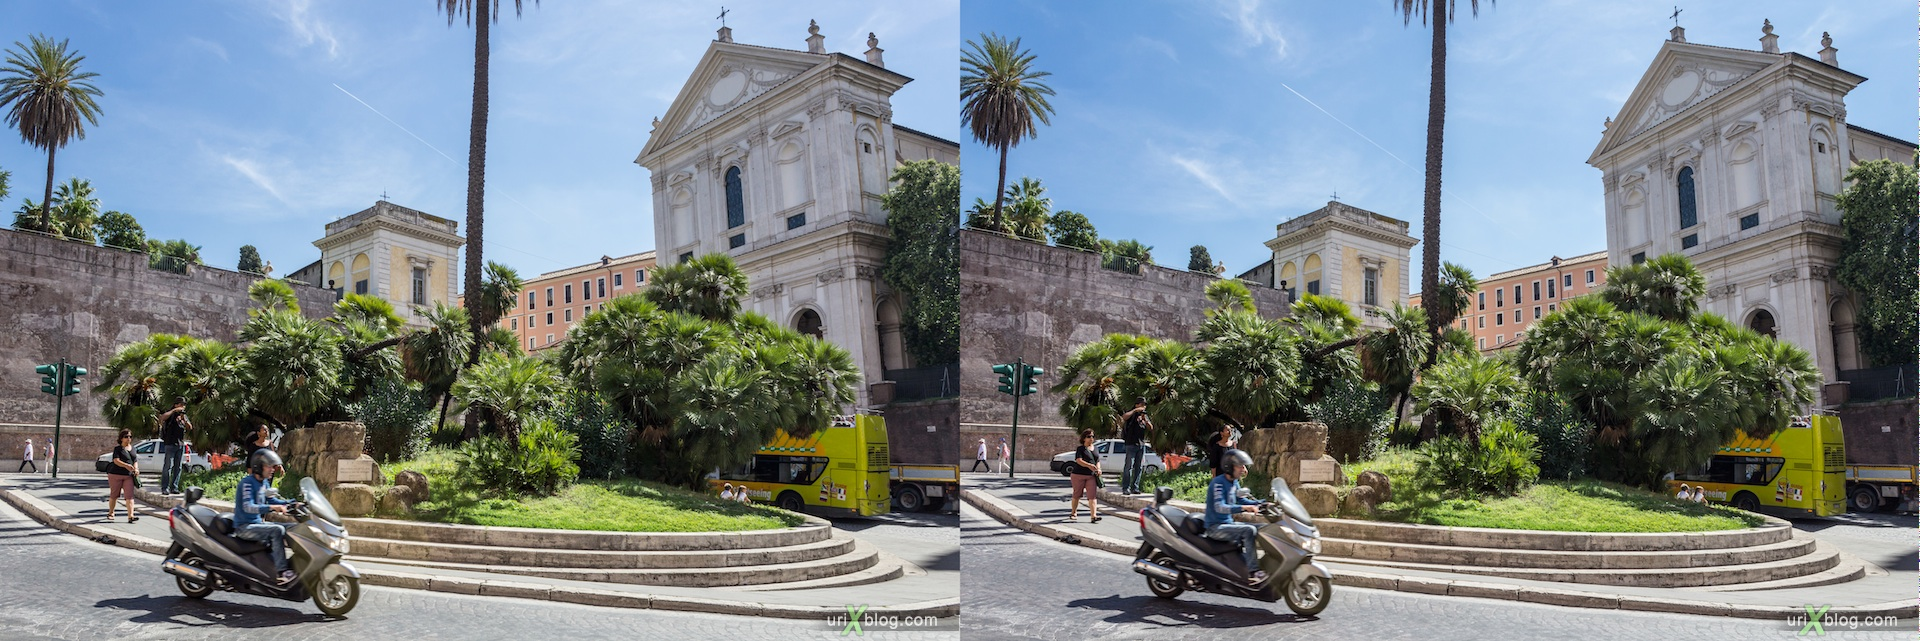 2012, Largo Magnanapoli square, Rome, Italy, Europe, 3D, stereo pair, cross-eyed, crossview, cross view stereo pair